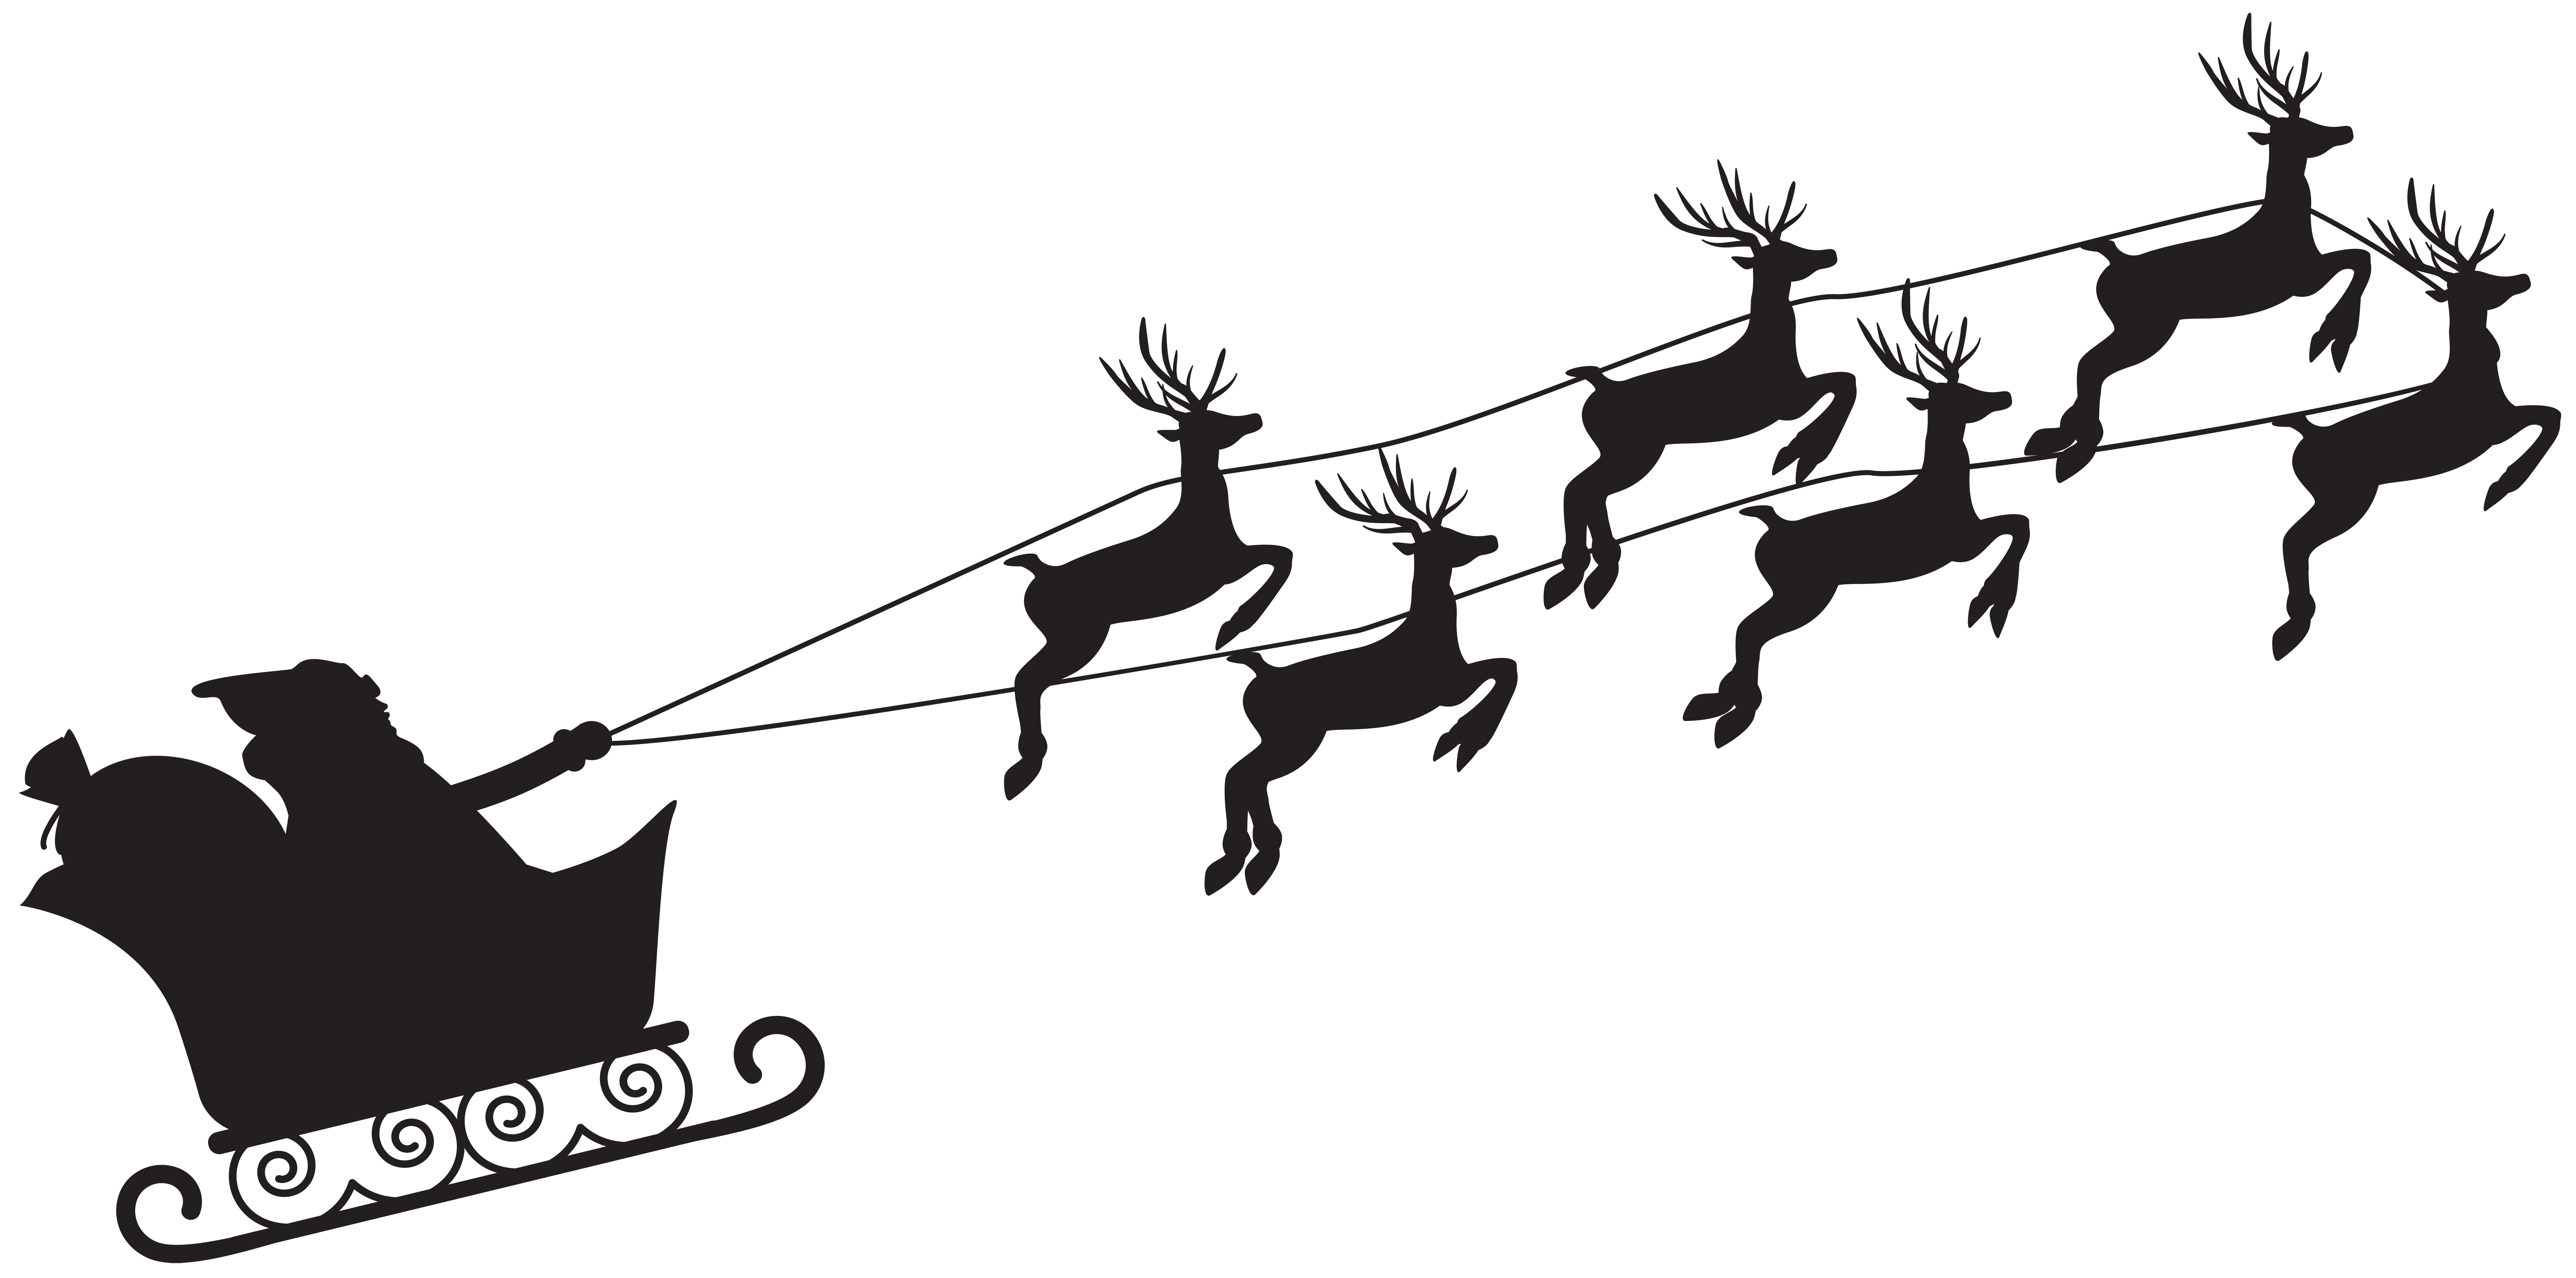 Santa claus at getdrawings. Lds clipart silhouette